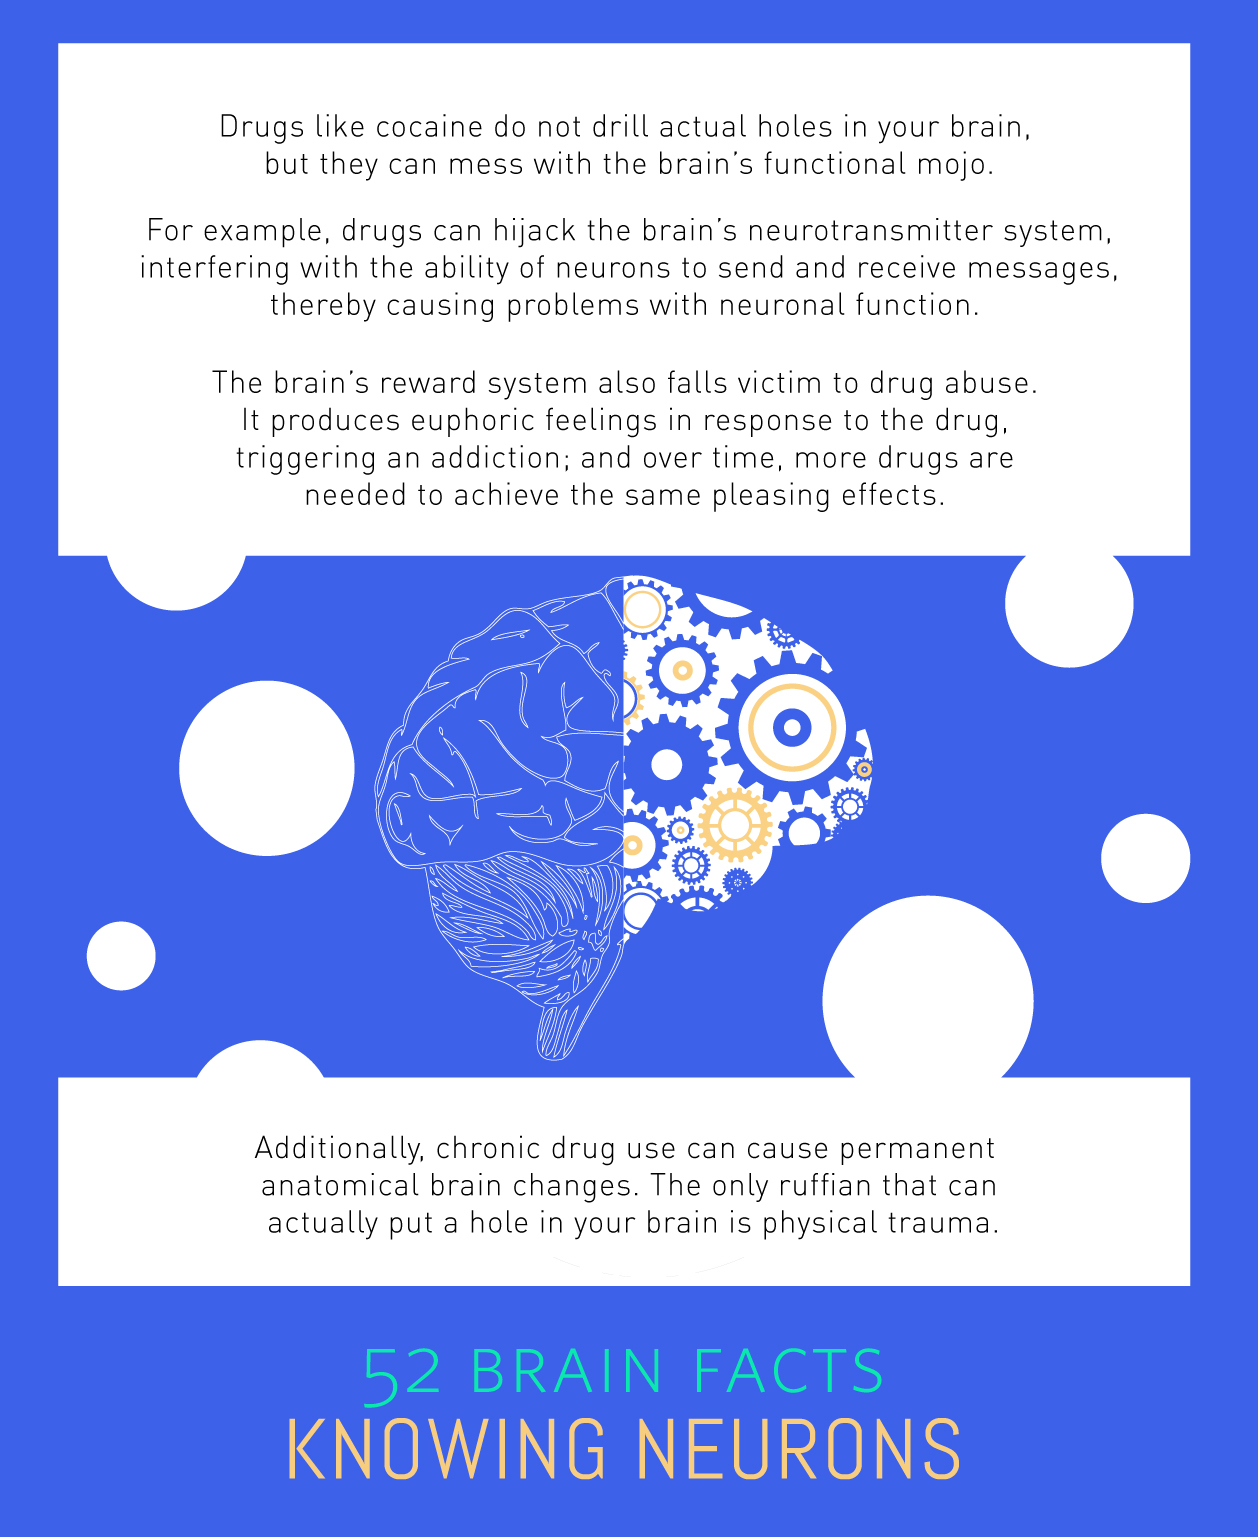 Myth or Fact? Drug abuse can put holes in your brain.